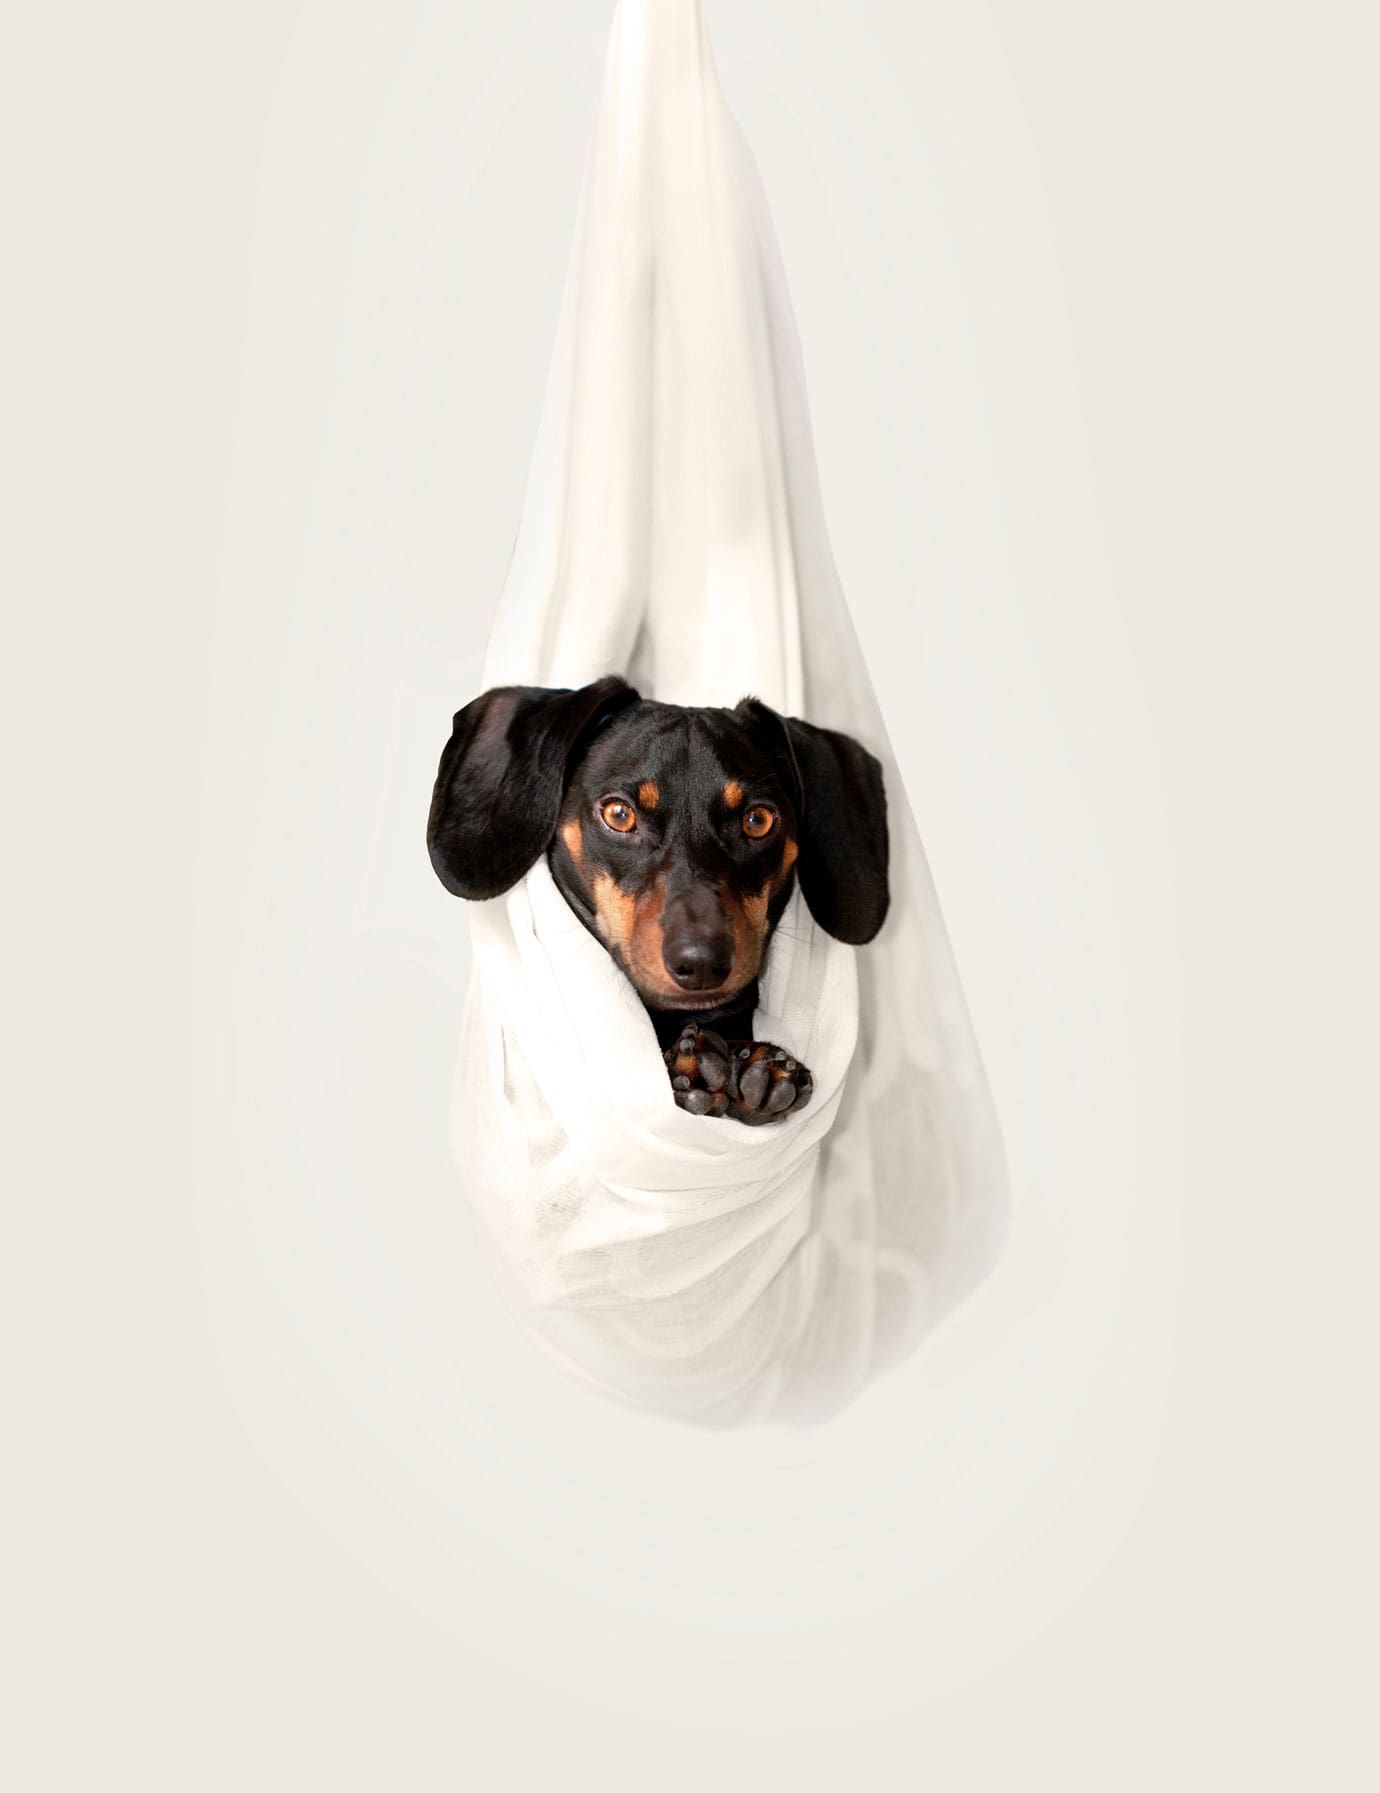 Hung your dog and take a photo